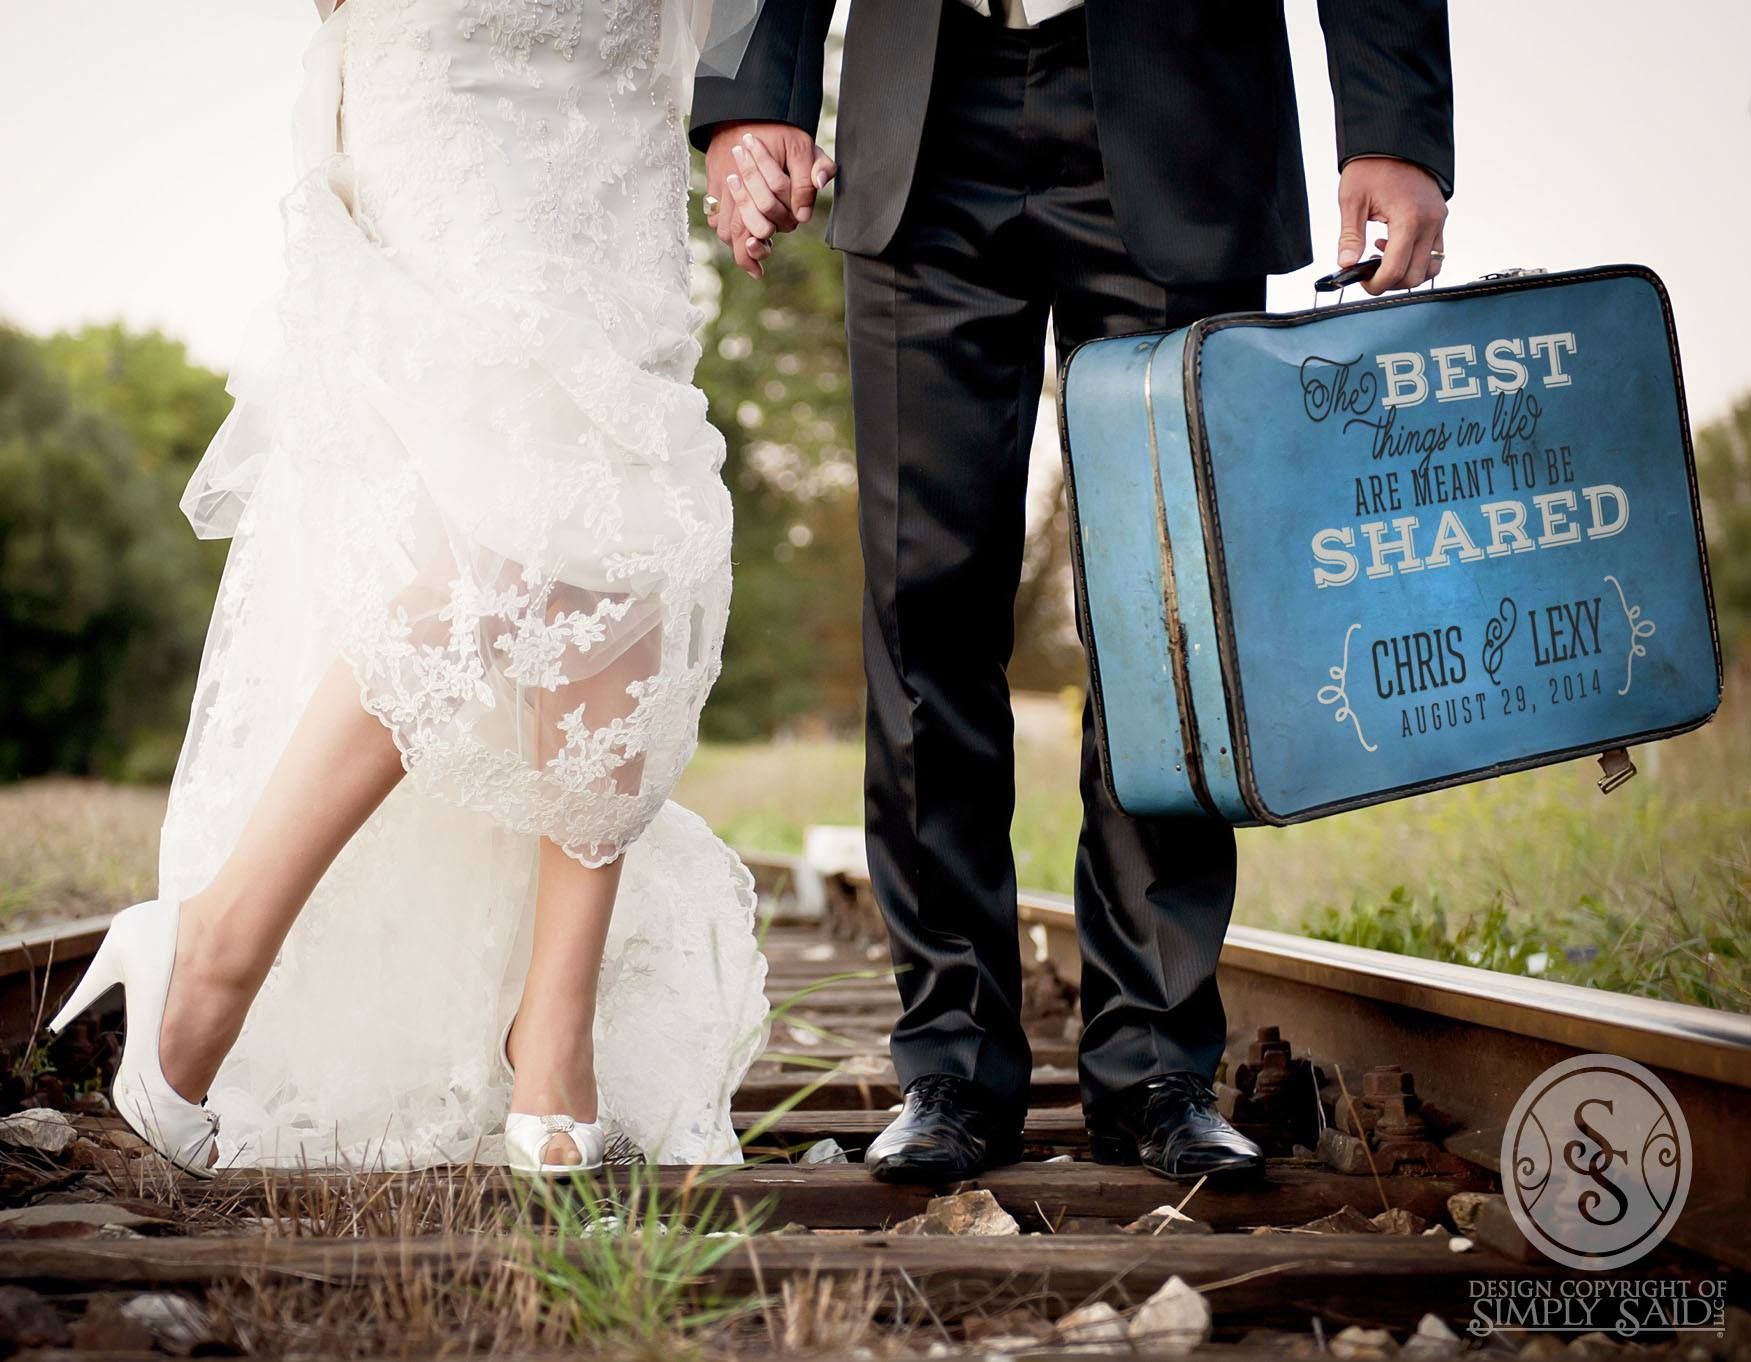 Want to make your wedding pictures a thing to remember, use our vinyl designs on an old suitcase for a nice traditional meets rustic look.  Available at www.mysimplysaiddesigns.com/kraftycam/